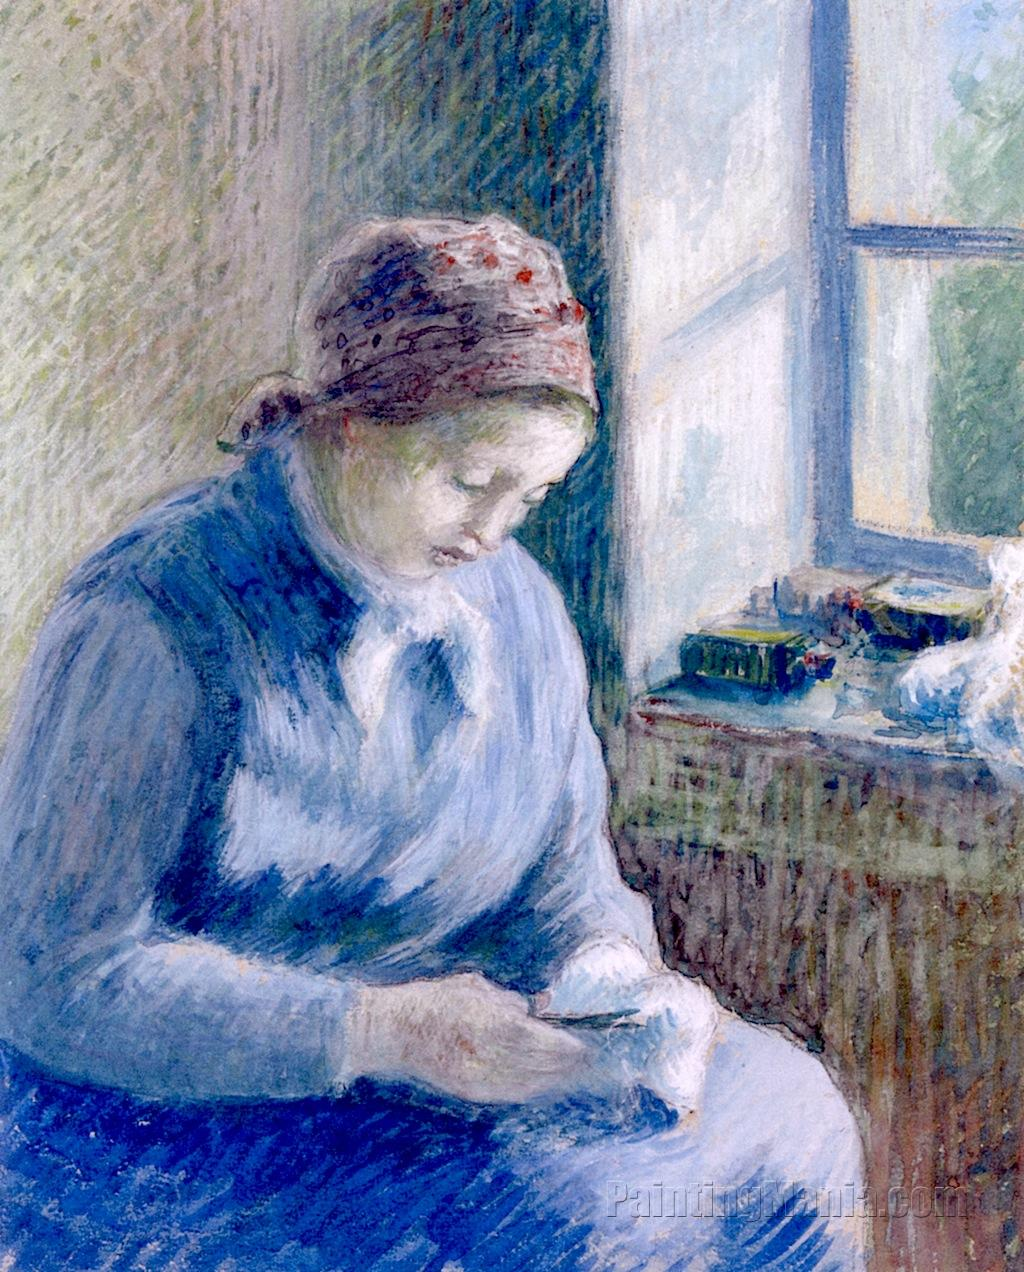 Woman Mending Socks